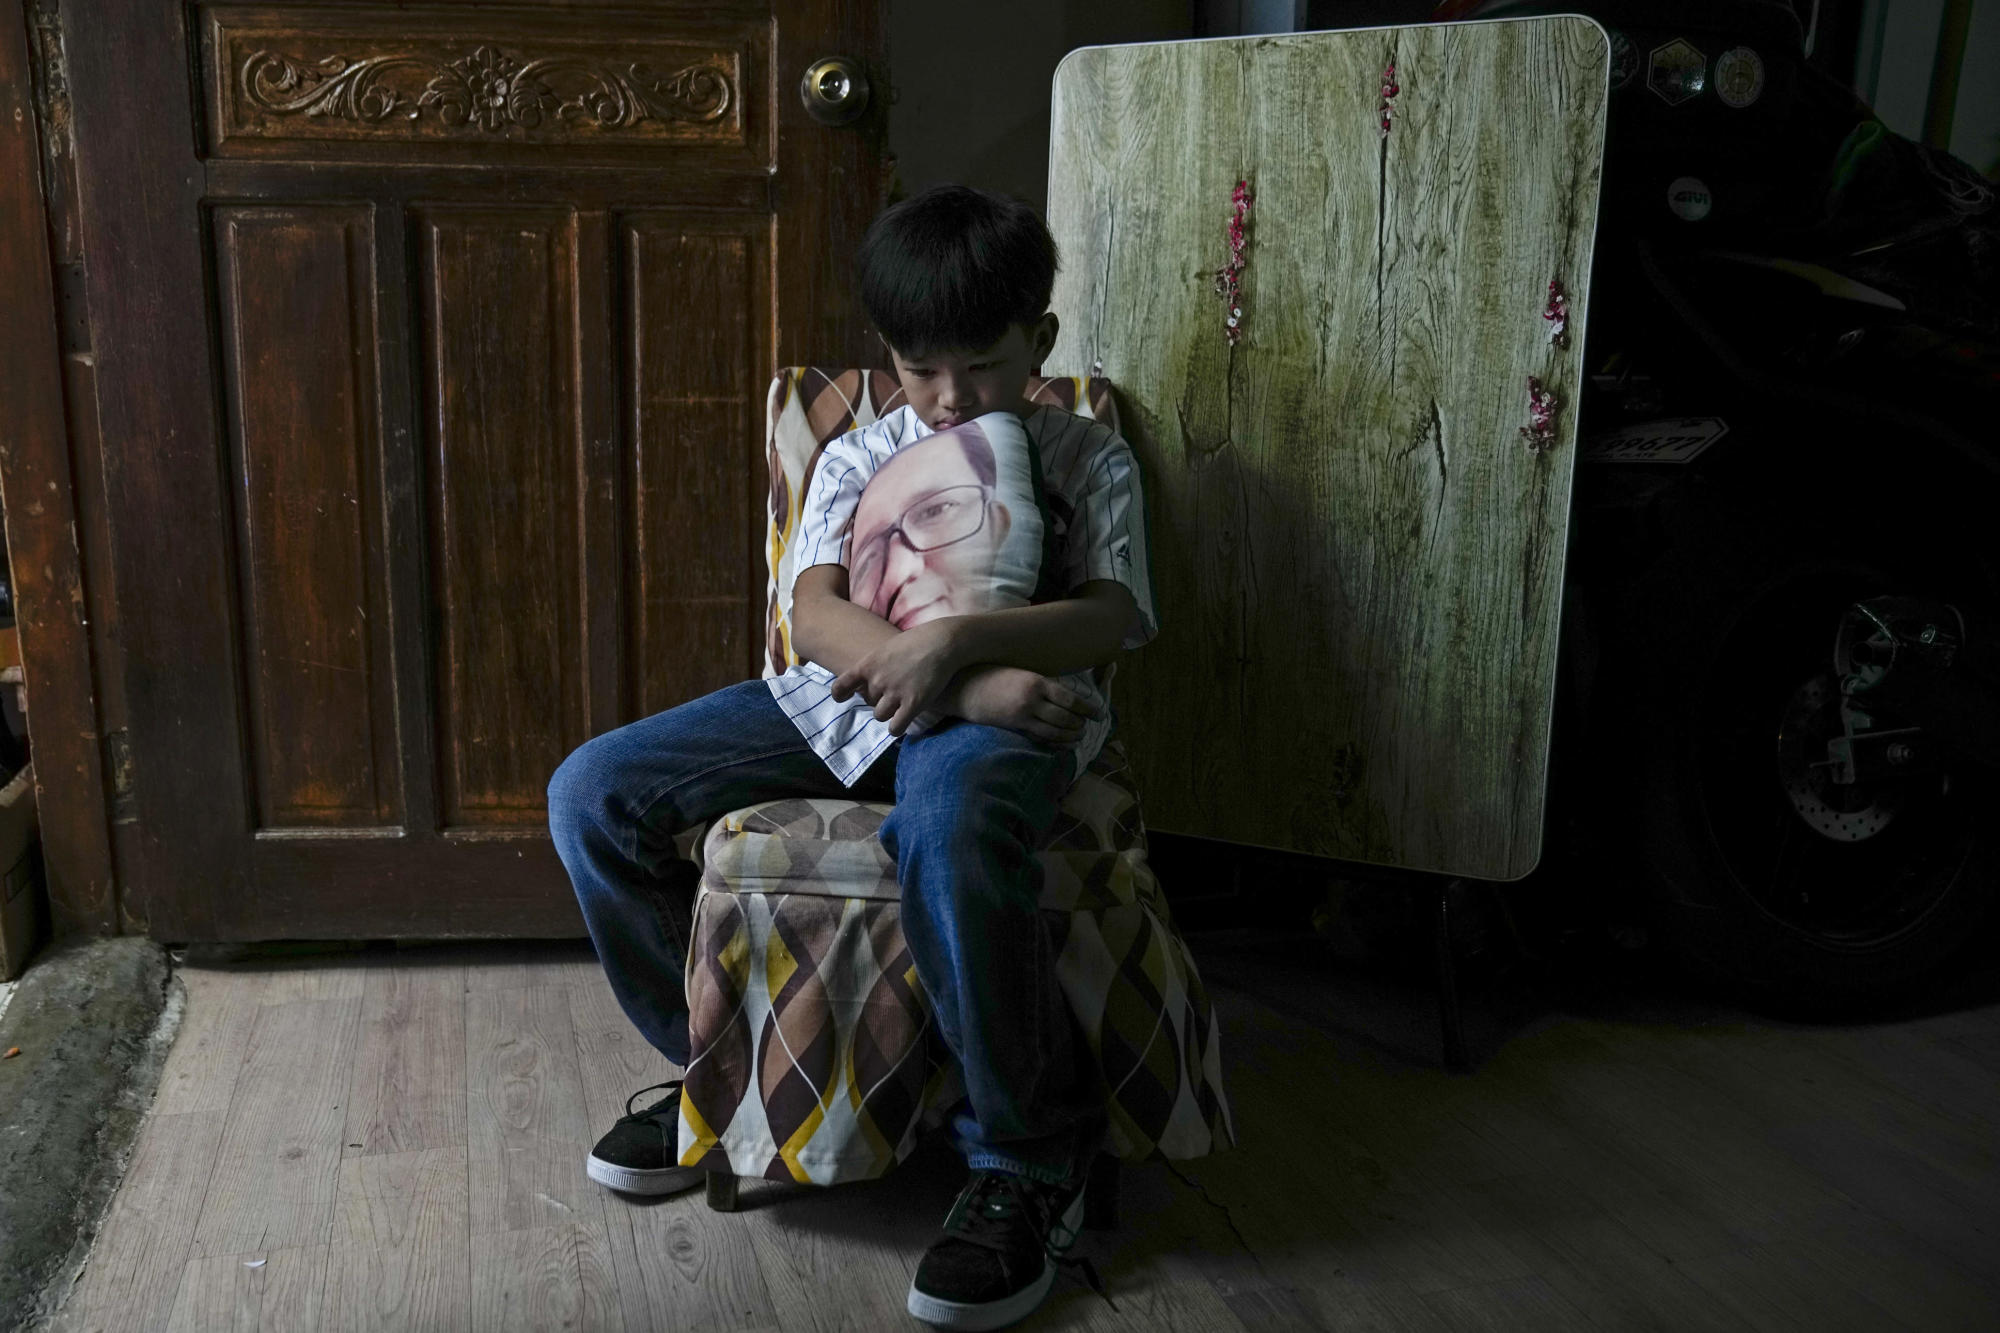 AP PHOTOS: With 4 million COVID dead, many kids left behind